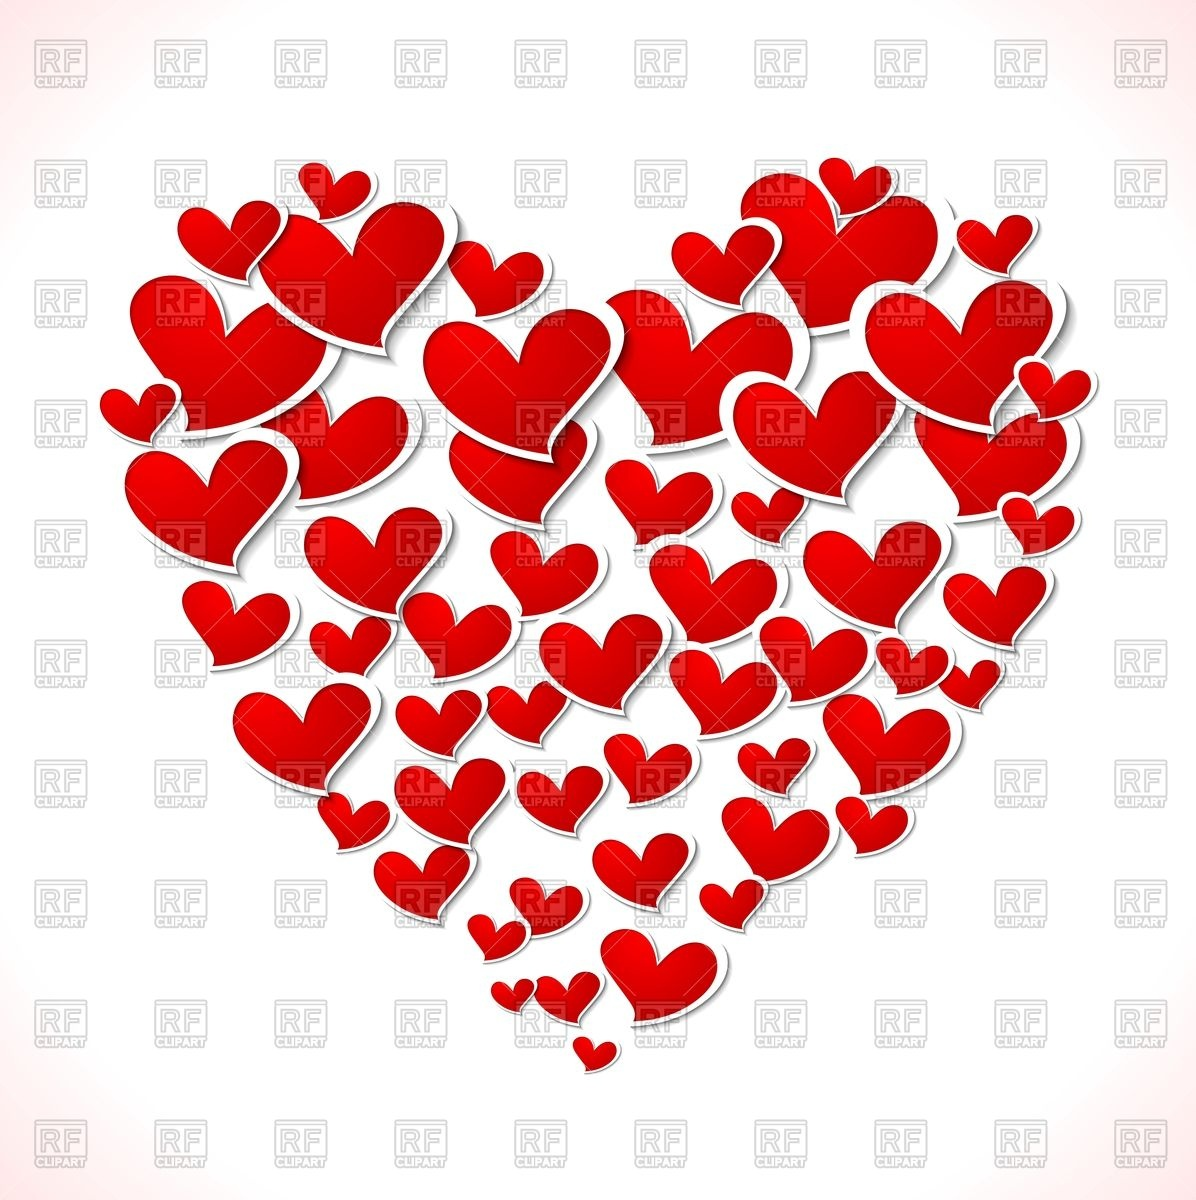 Valentines day clipart transparent hearts picture library Big heart of little hearts - Valentine Day Vector Image #53538 ... picture library